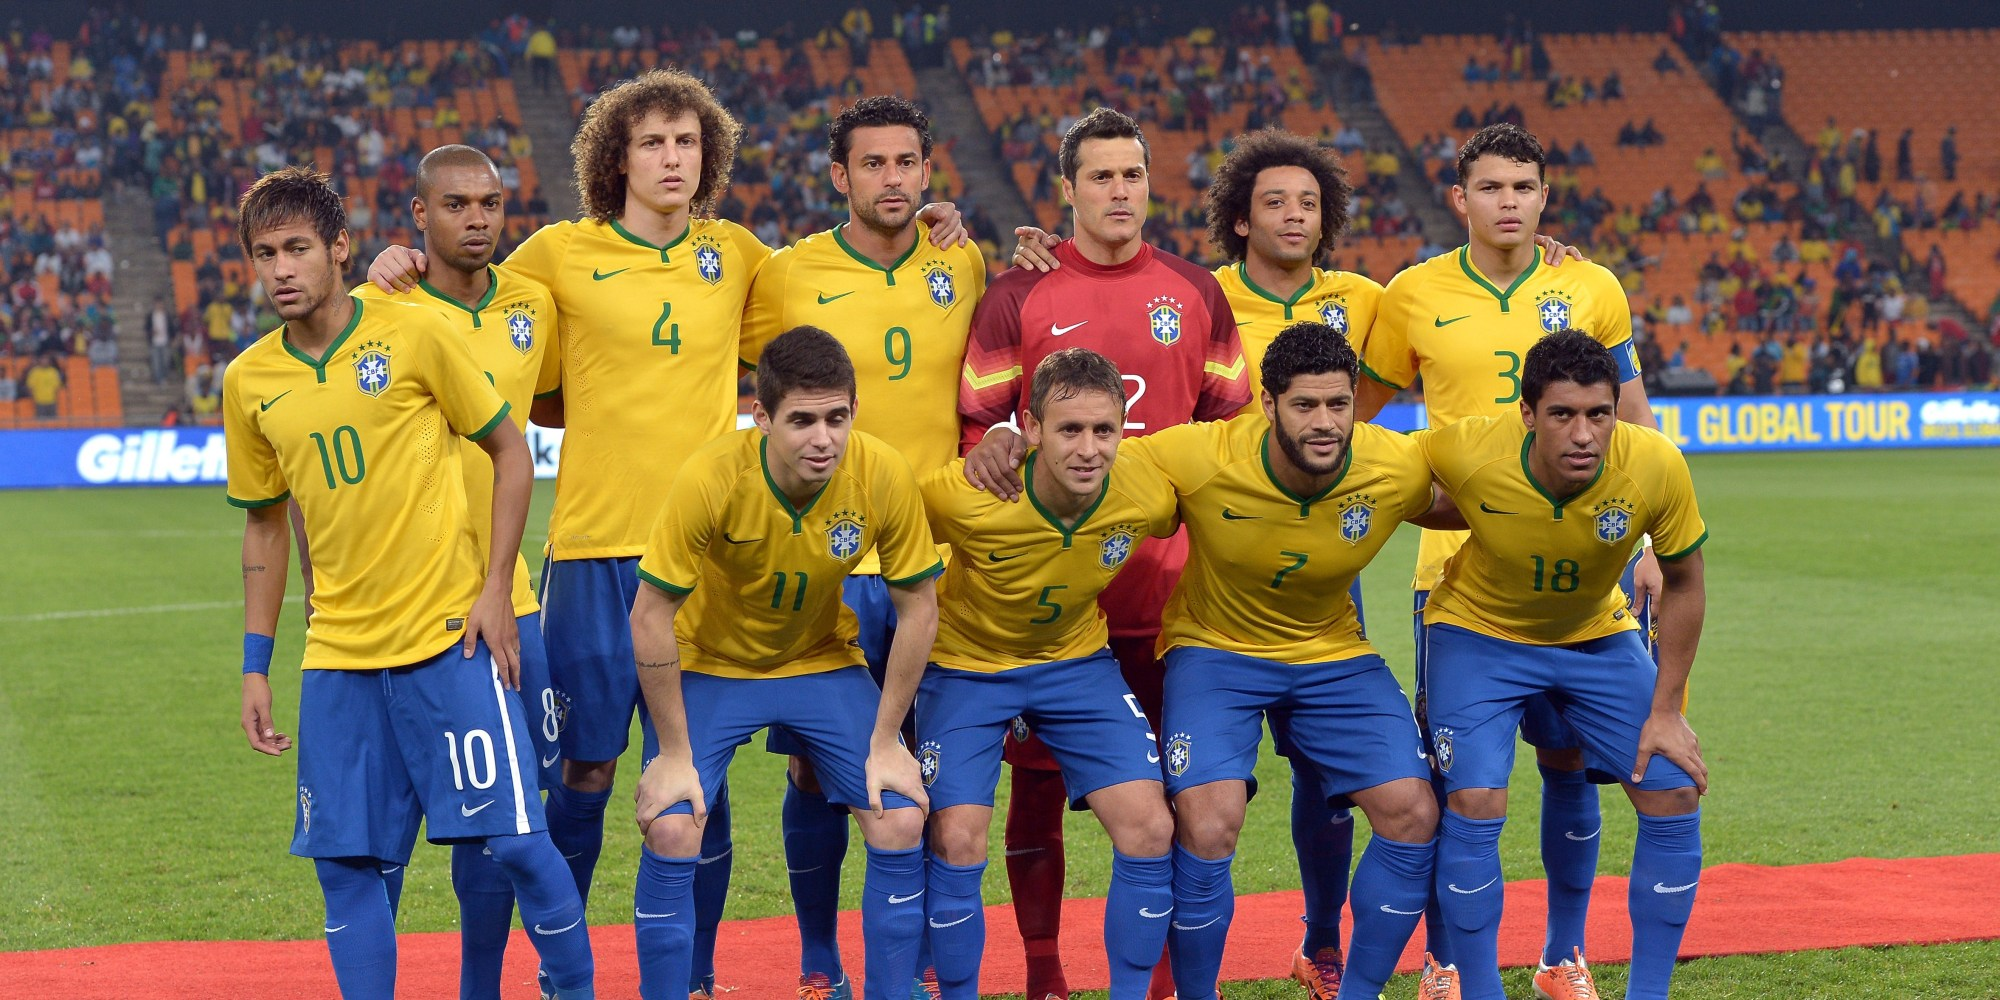 Preview of Luiz Felipe Scolari39;s Likely Brazil Squad for the 2014